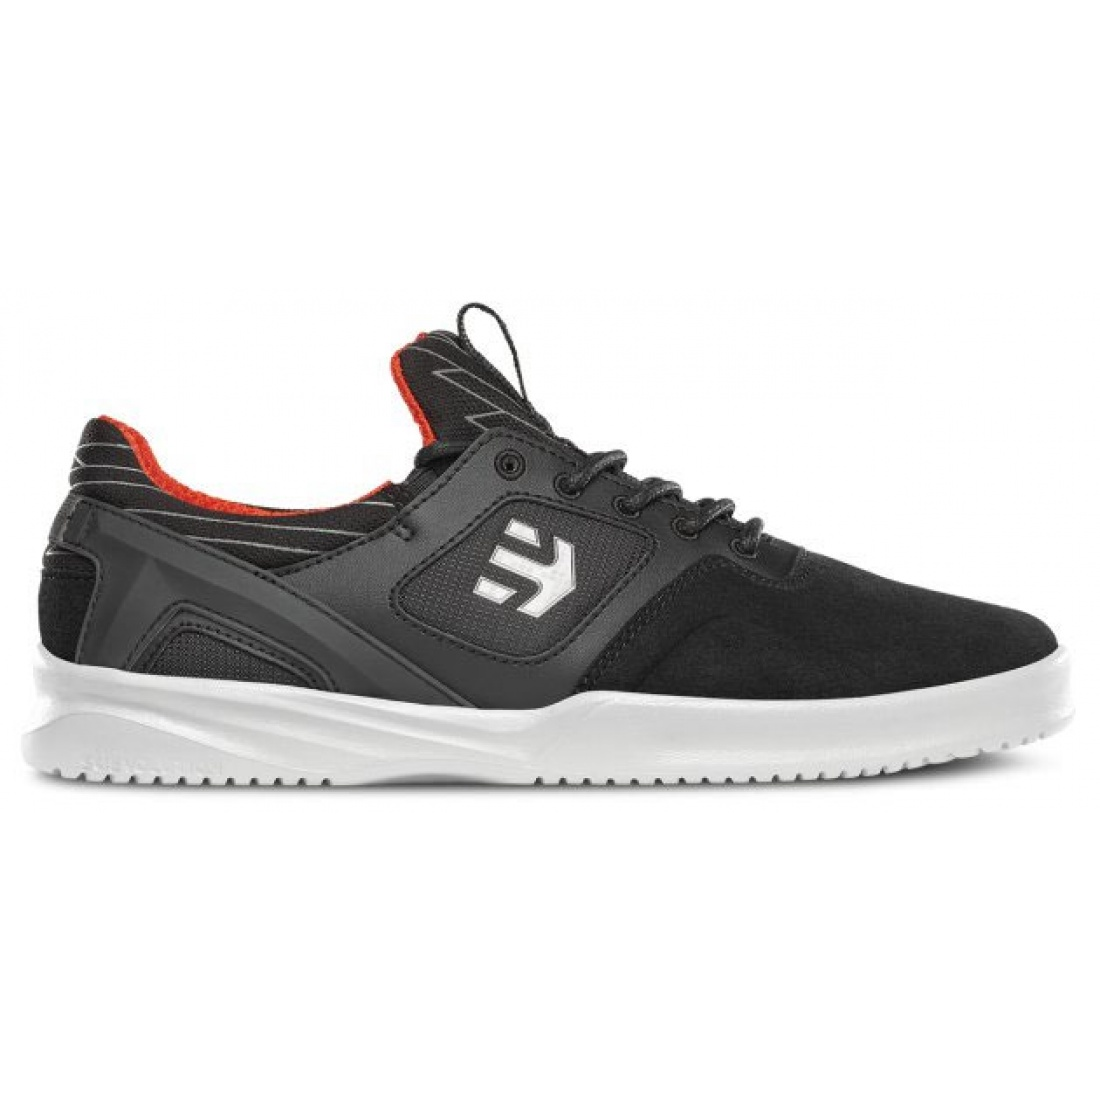 ETN - Highlight Black/White/Orange 9.0 US 42 EU